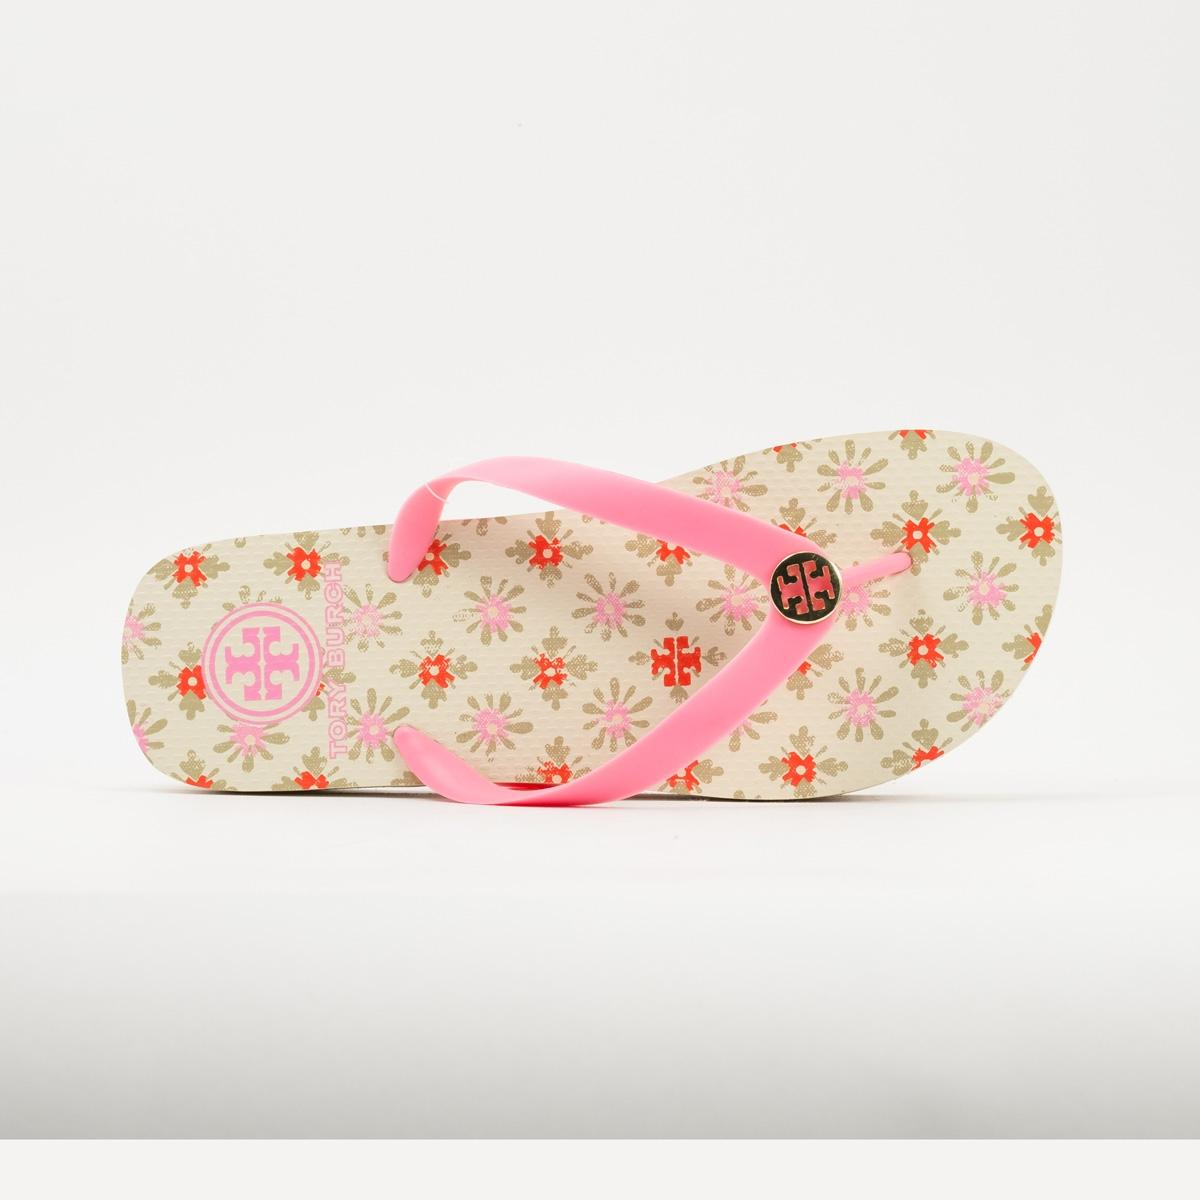 fb2493aaf09 ... Tory Tory Tory Burch Multicolor Logo Rubber Flip Flop Sandals Size US 7  Regular (M ...